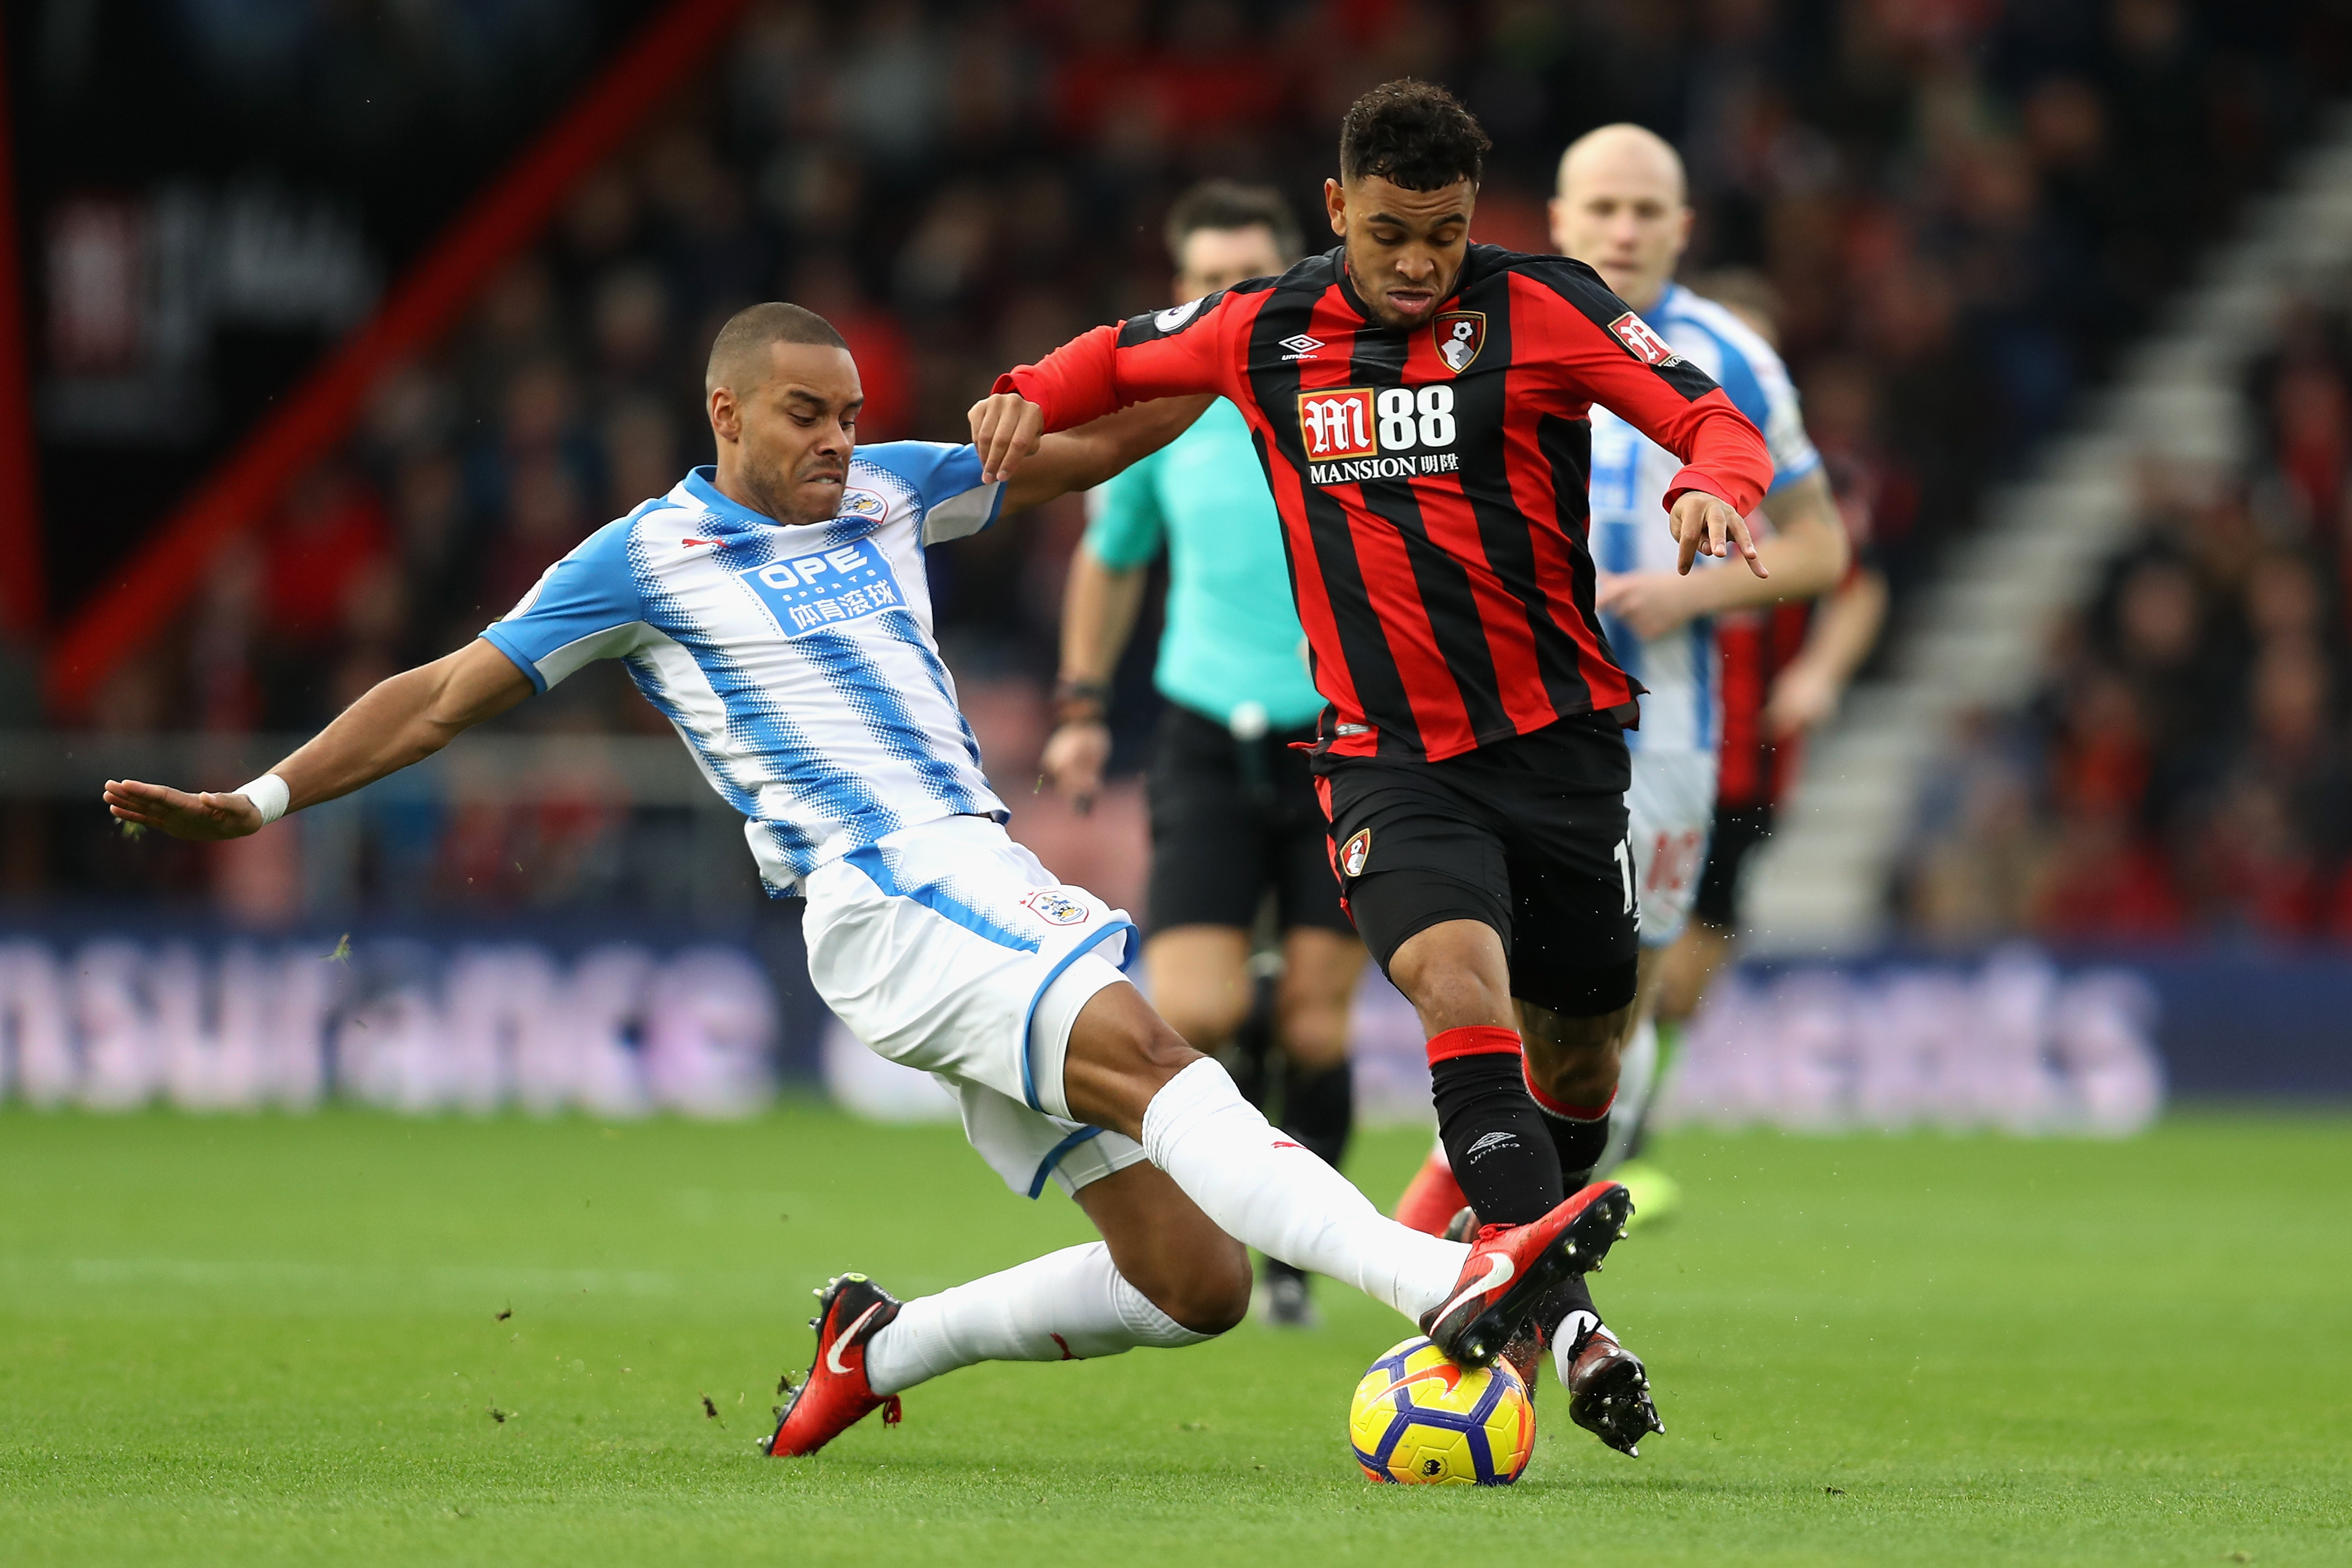 Arsenal Vs Huddersfield: Arsenal Vs Huddersfield Town: 5 Key Players To Watch